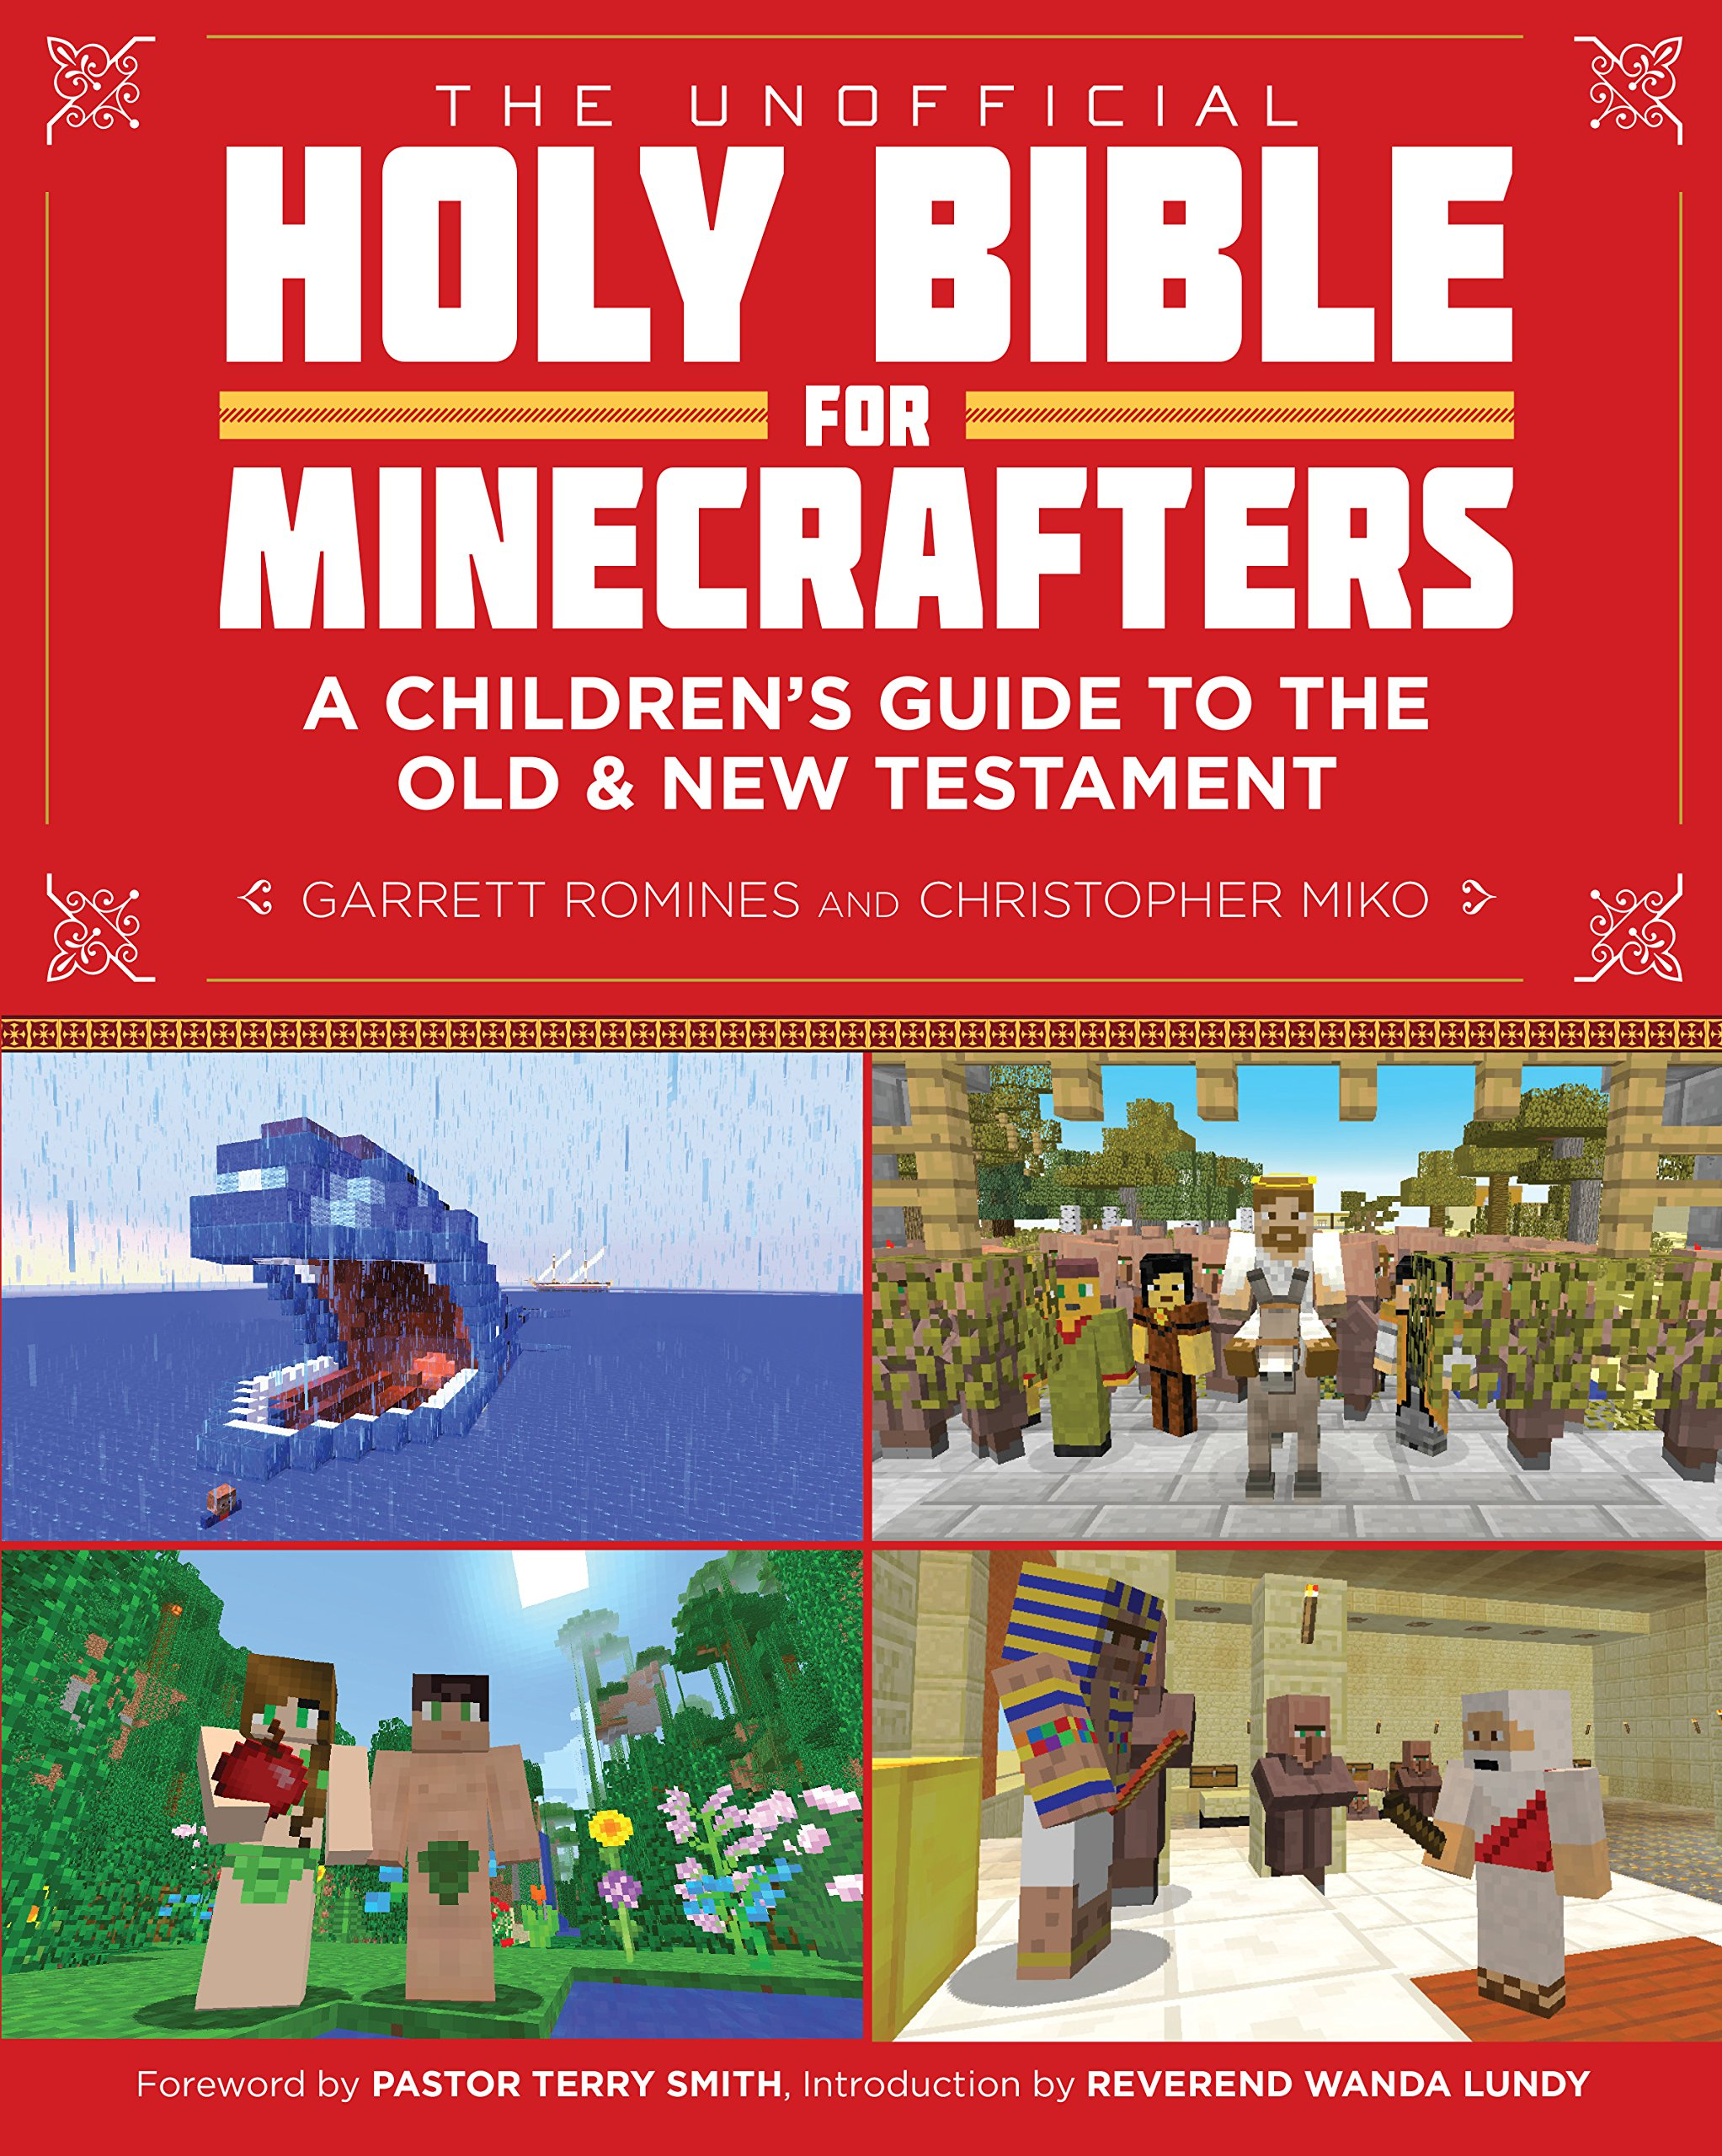 the unofficial holy bible for minecrafters a children u0027s guide to